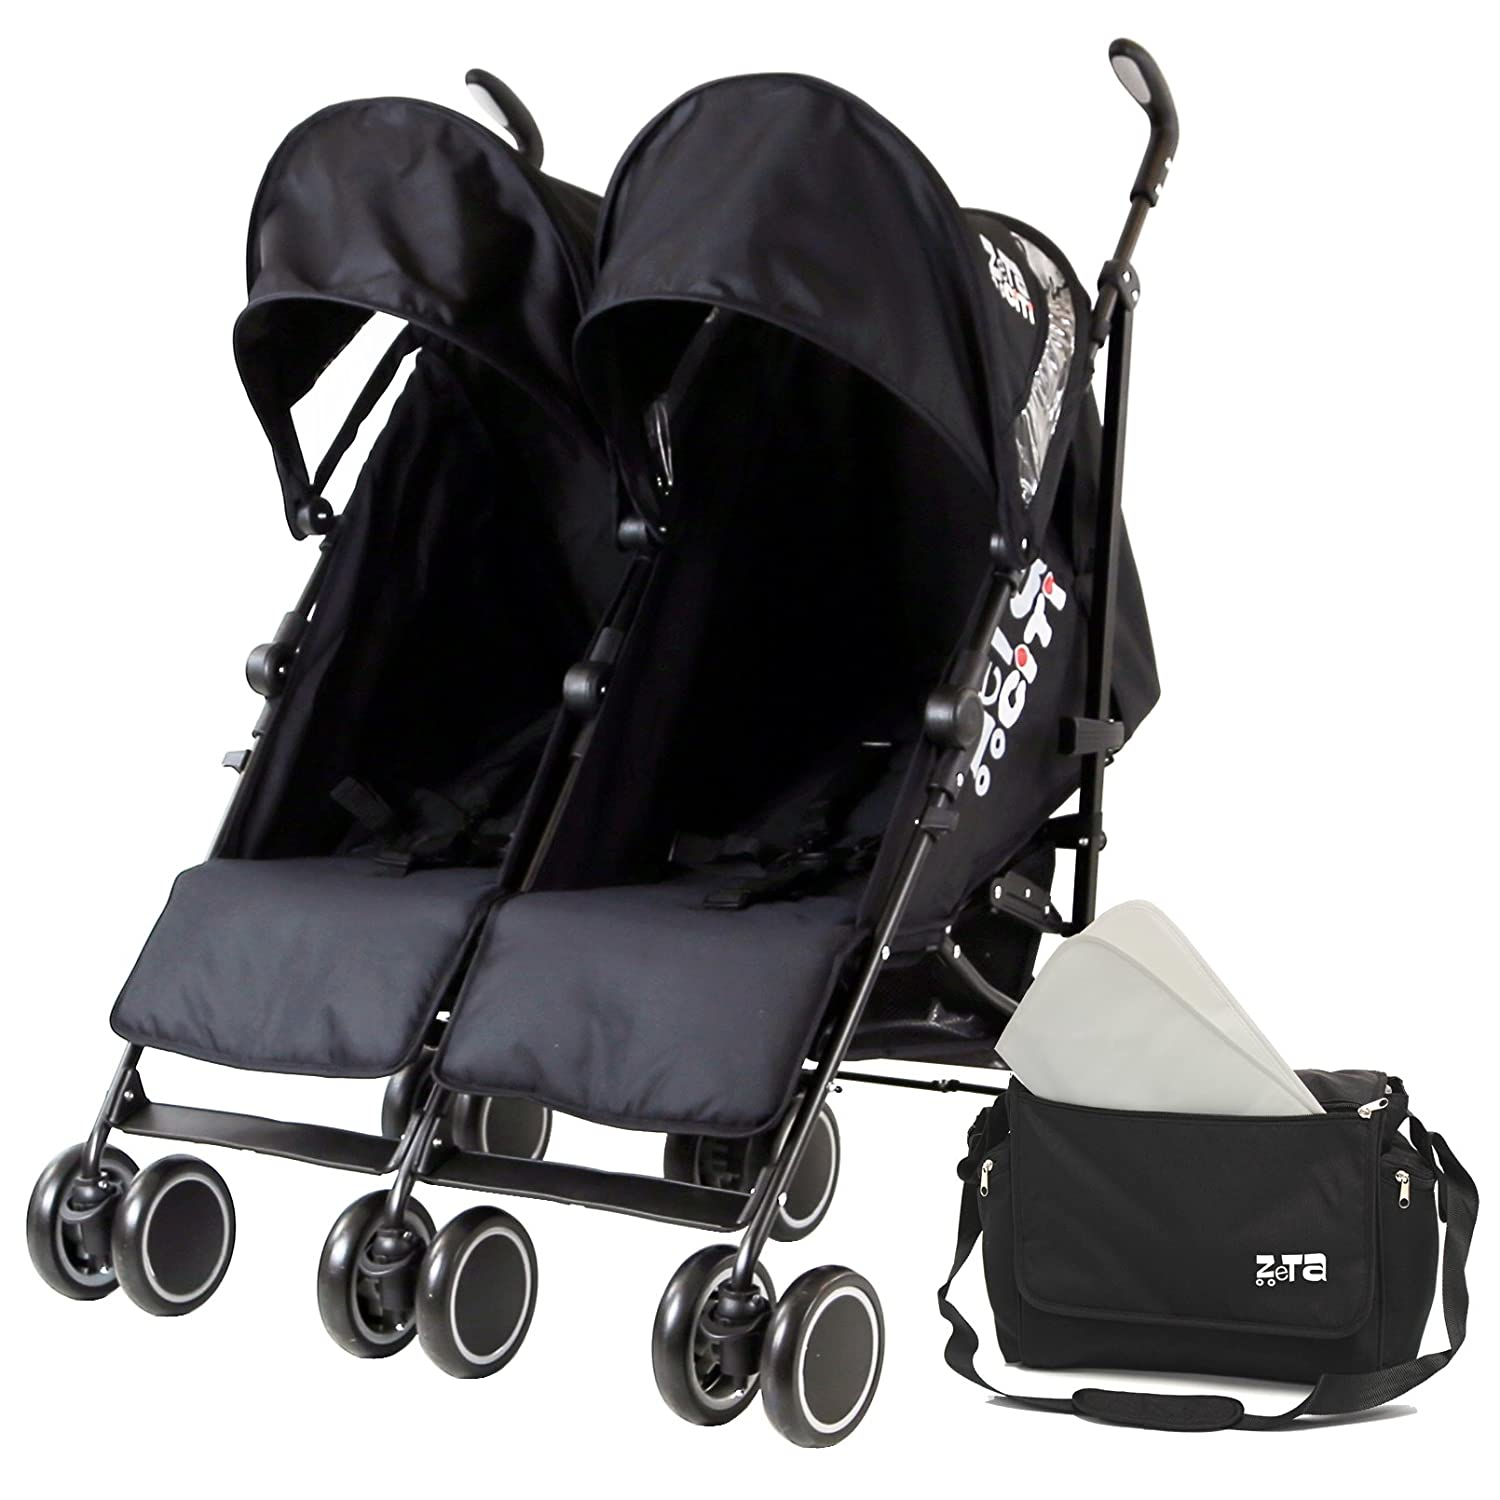 Zeta Citi TWIN Stroller Buggy Pushchair - Black Double Stroller With Bag Baby TravelTM